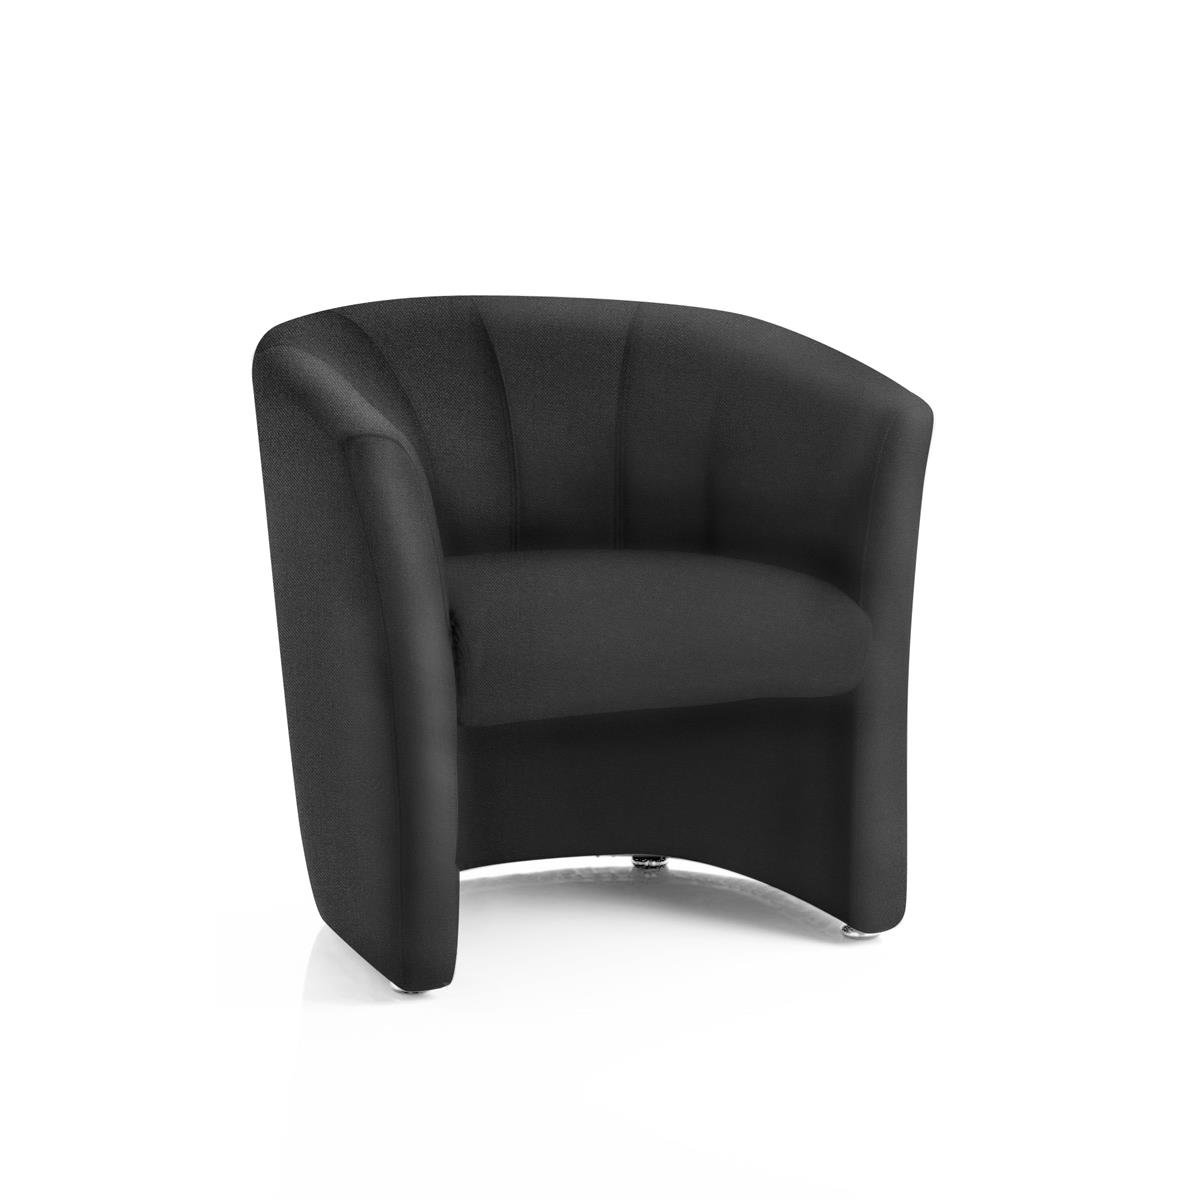 #Trexus Tub Arm Chair Black 450x480x460mm Ref BR000099